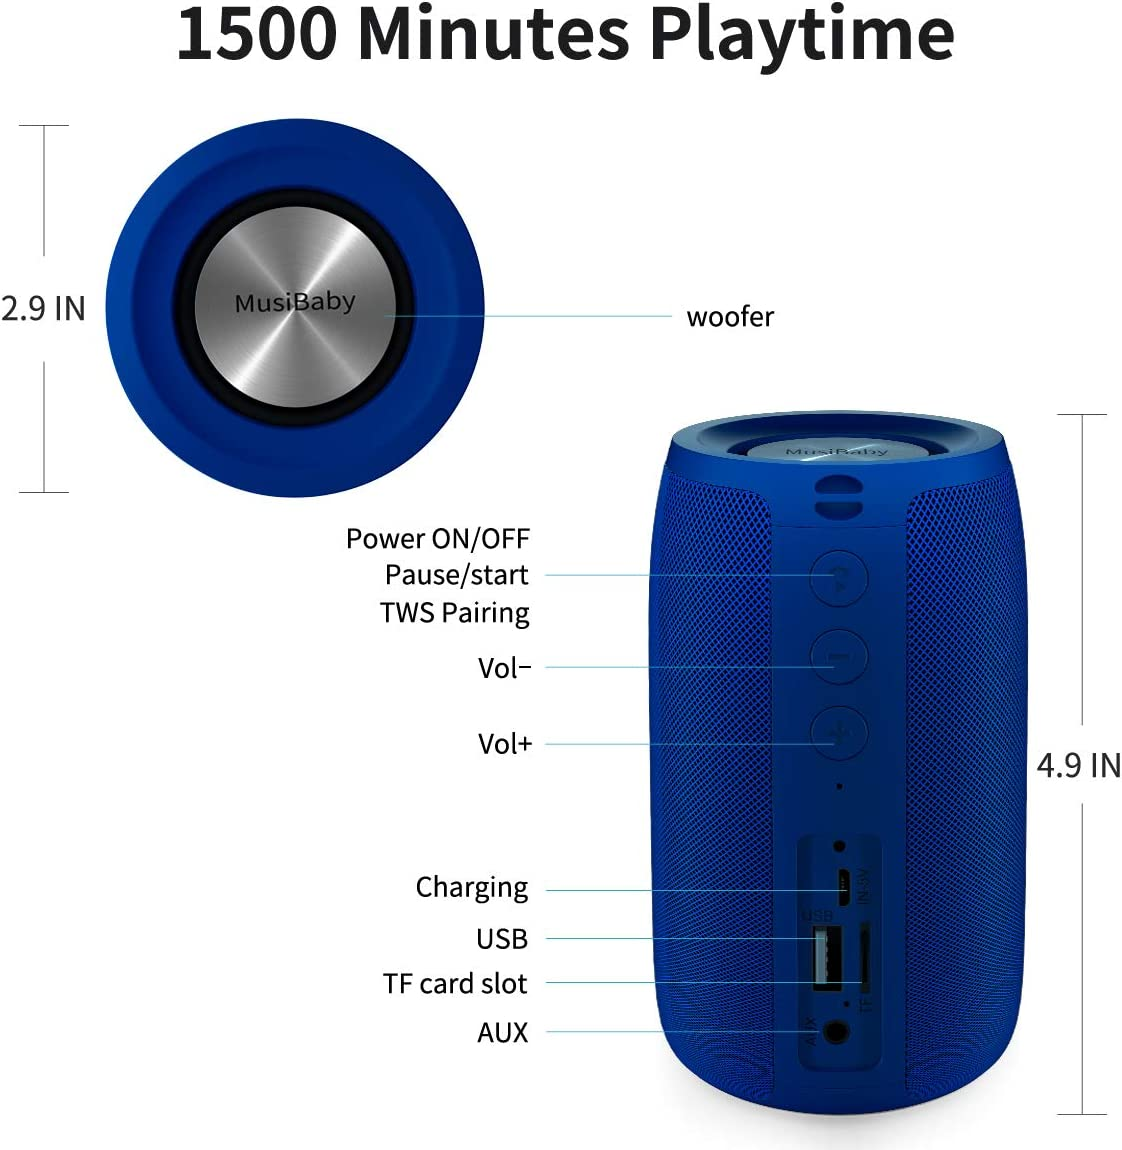 Blue Bluetooth Speaker,MusiBaby Speaker,Outdoor Portable,Waterproof,Wireless Speakers,Dual Pairing Bluetooth 5.0,Loud Stereo,Booming Bass,1500 Mins Playtime for Home,Party,Camping